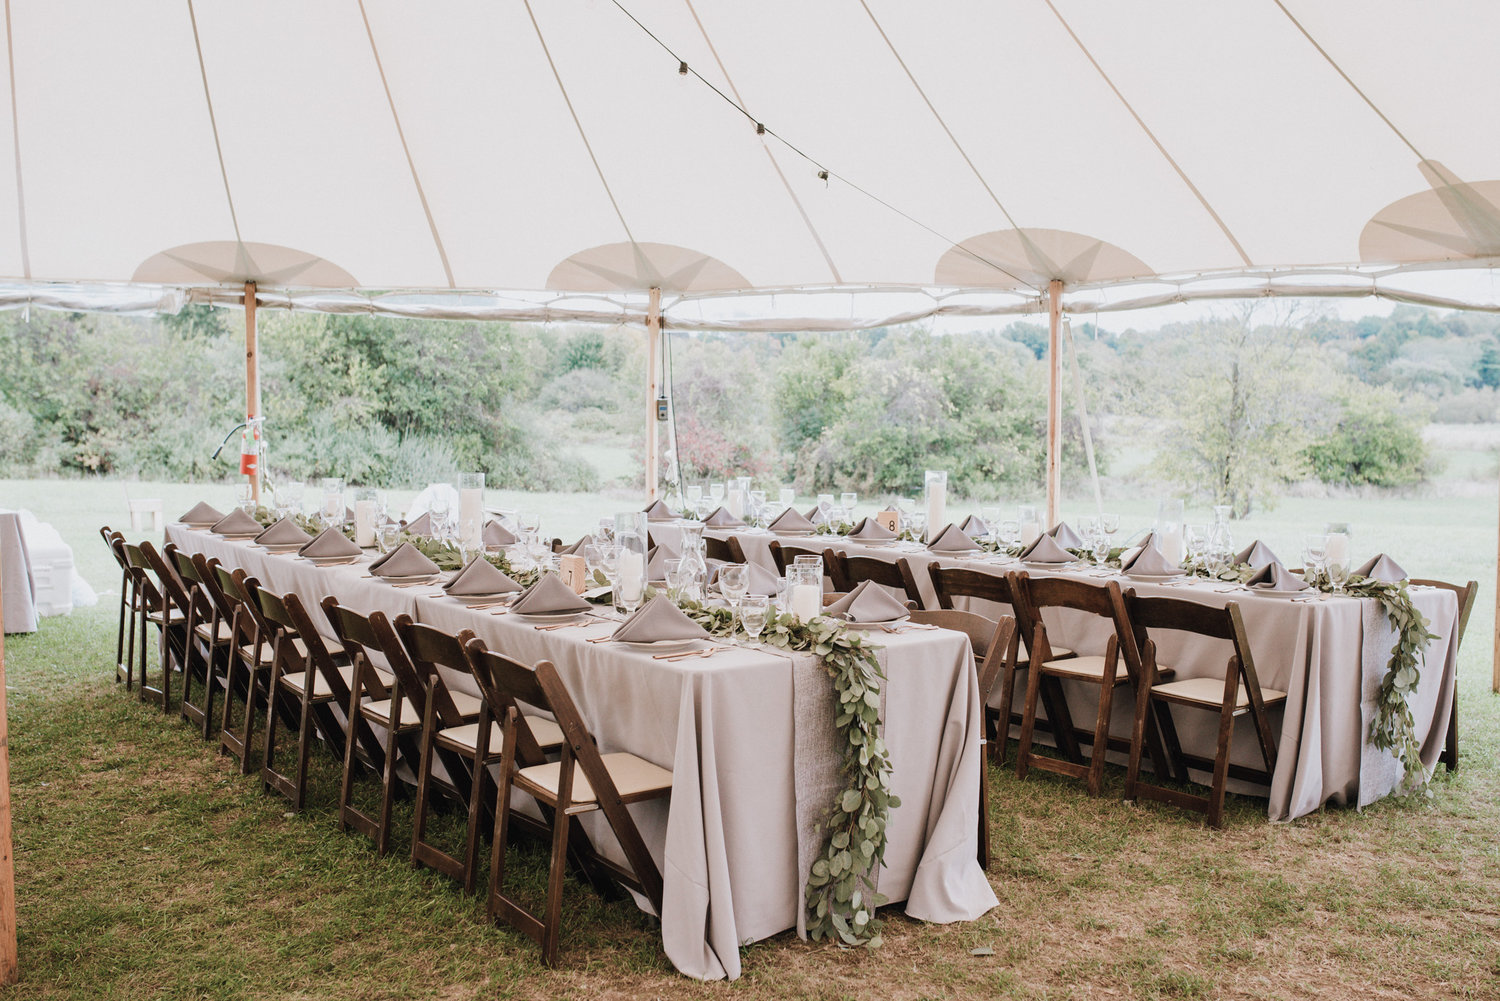 Wedding planner Hilary Smith can help couples set up a backyard wedding with a tent, and she organizes everything from the catering to the tent setup.